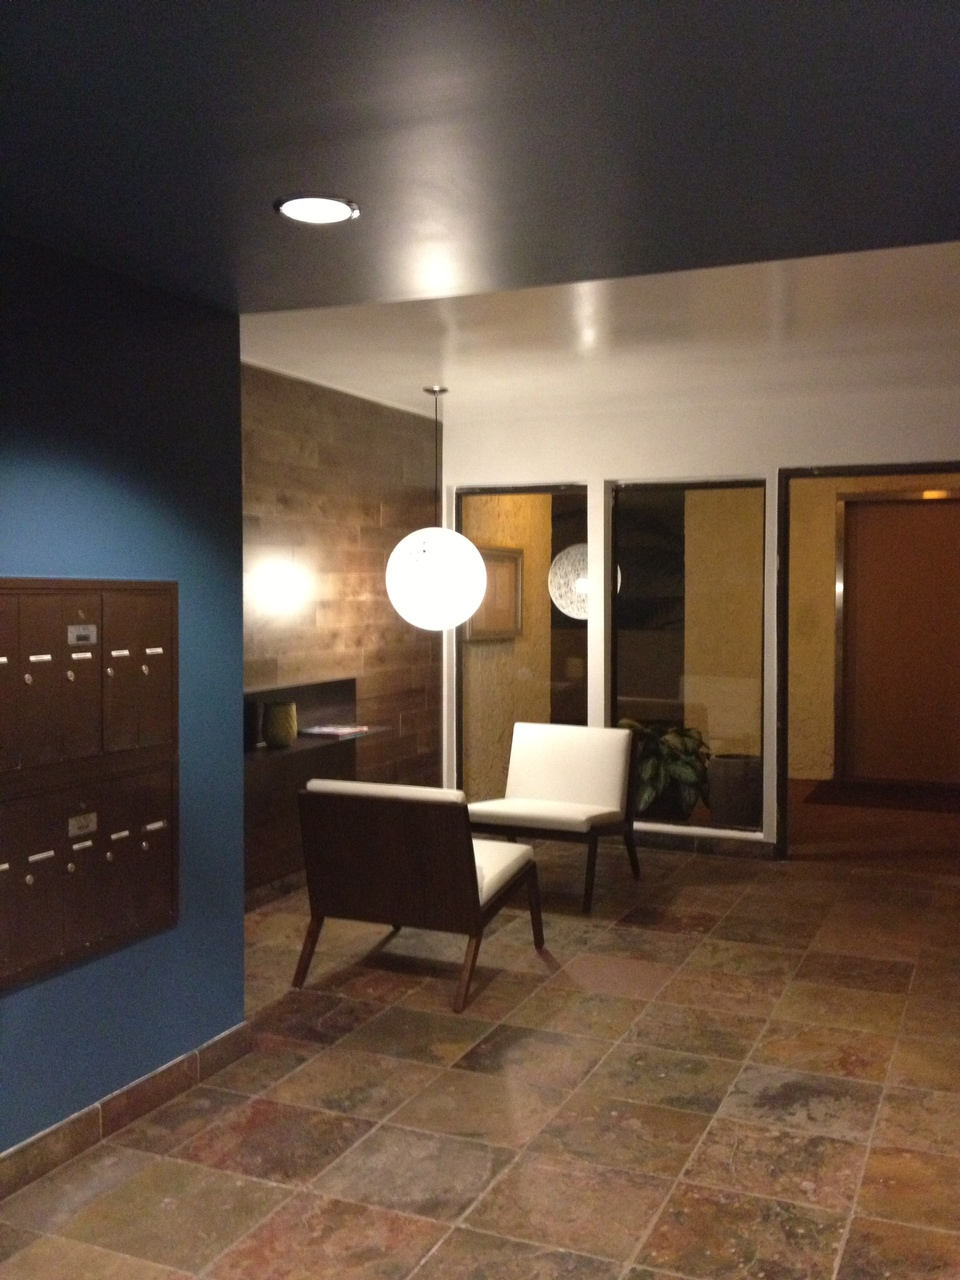 The finished lobby that Michael designed for his condo complex.